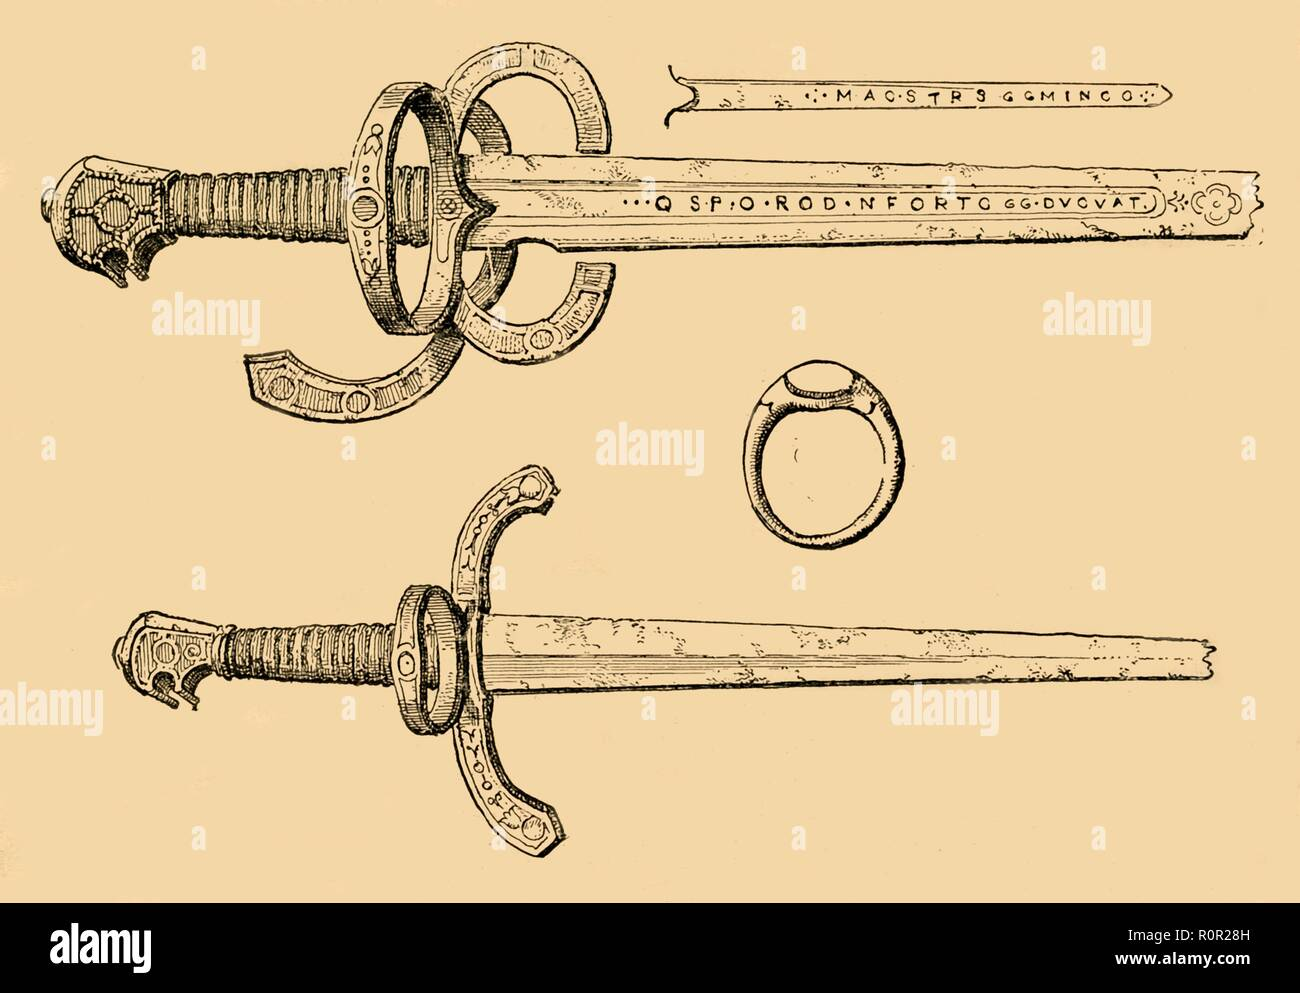 'Sword, Dagger and Ring of King James IV, of Scotland', 1897. Items said to have belonged to James IV (1473-1513), preserved in the Heralds' College in London. From Old and New London, Volume I, by Walter Thornbury. [Cassell and Company, Limited, London, Paris & Melbourne, 1897] - Stock Image